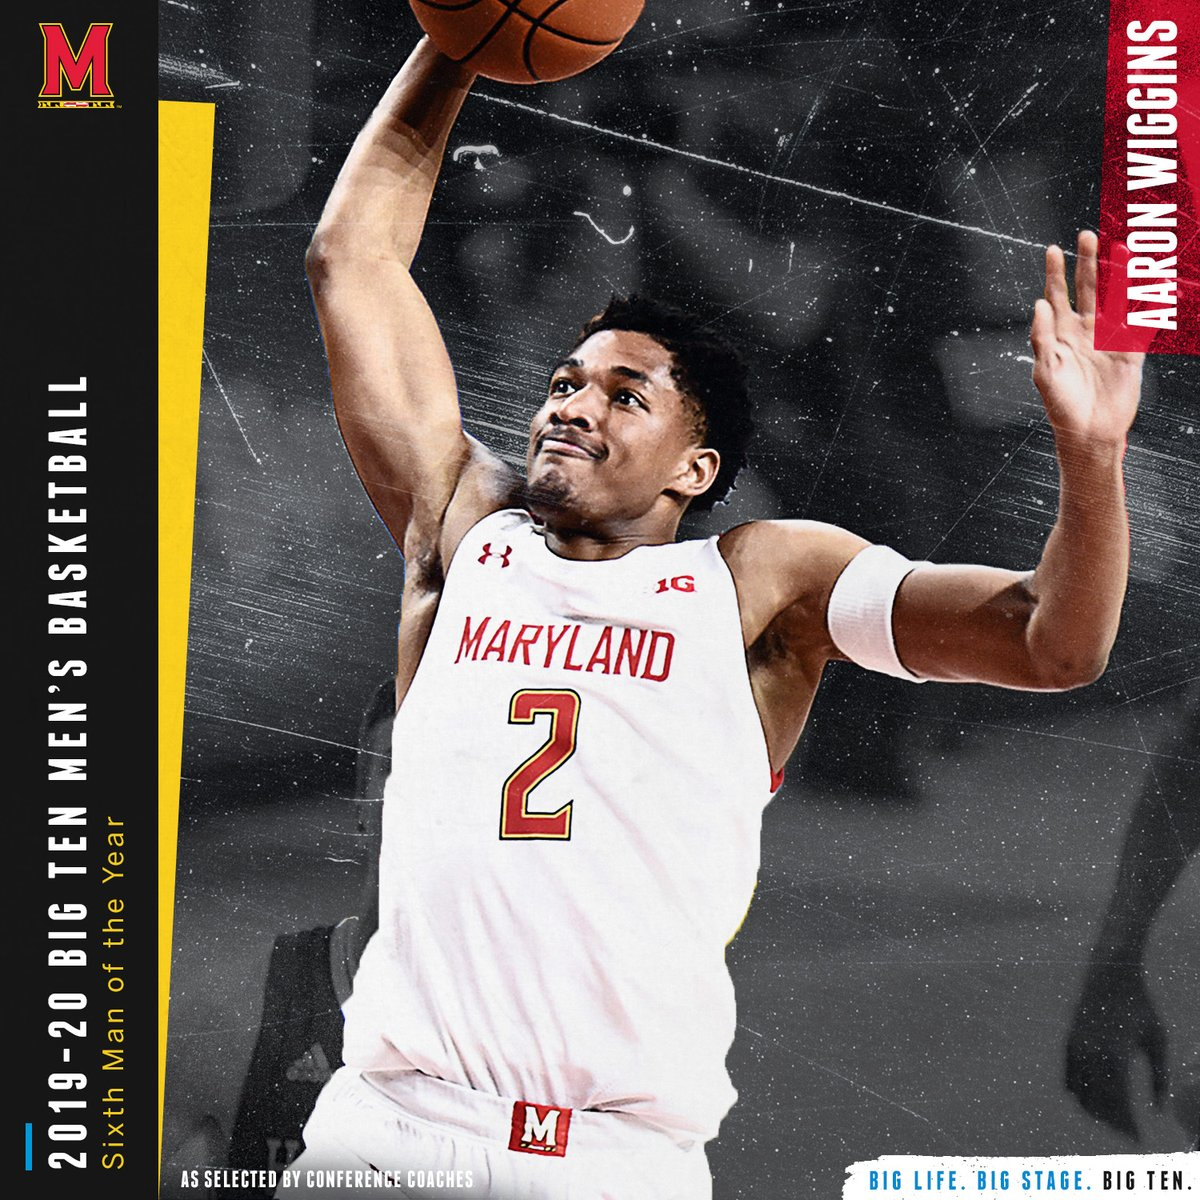 Aaron Wiggins of @TerrapinHoops named the 2019-20 Big Ten Sixth Man of the Year by conference coaches. #B1GMBBall